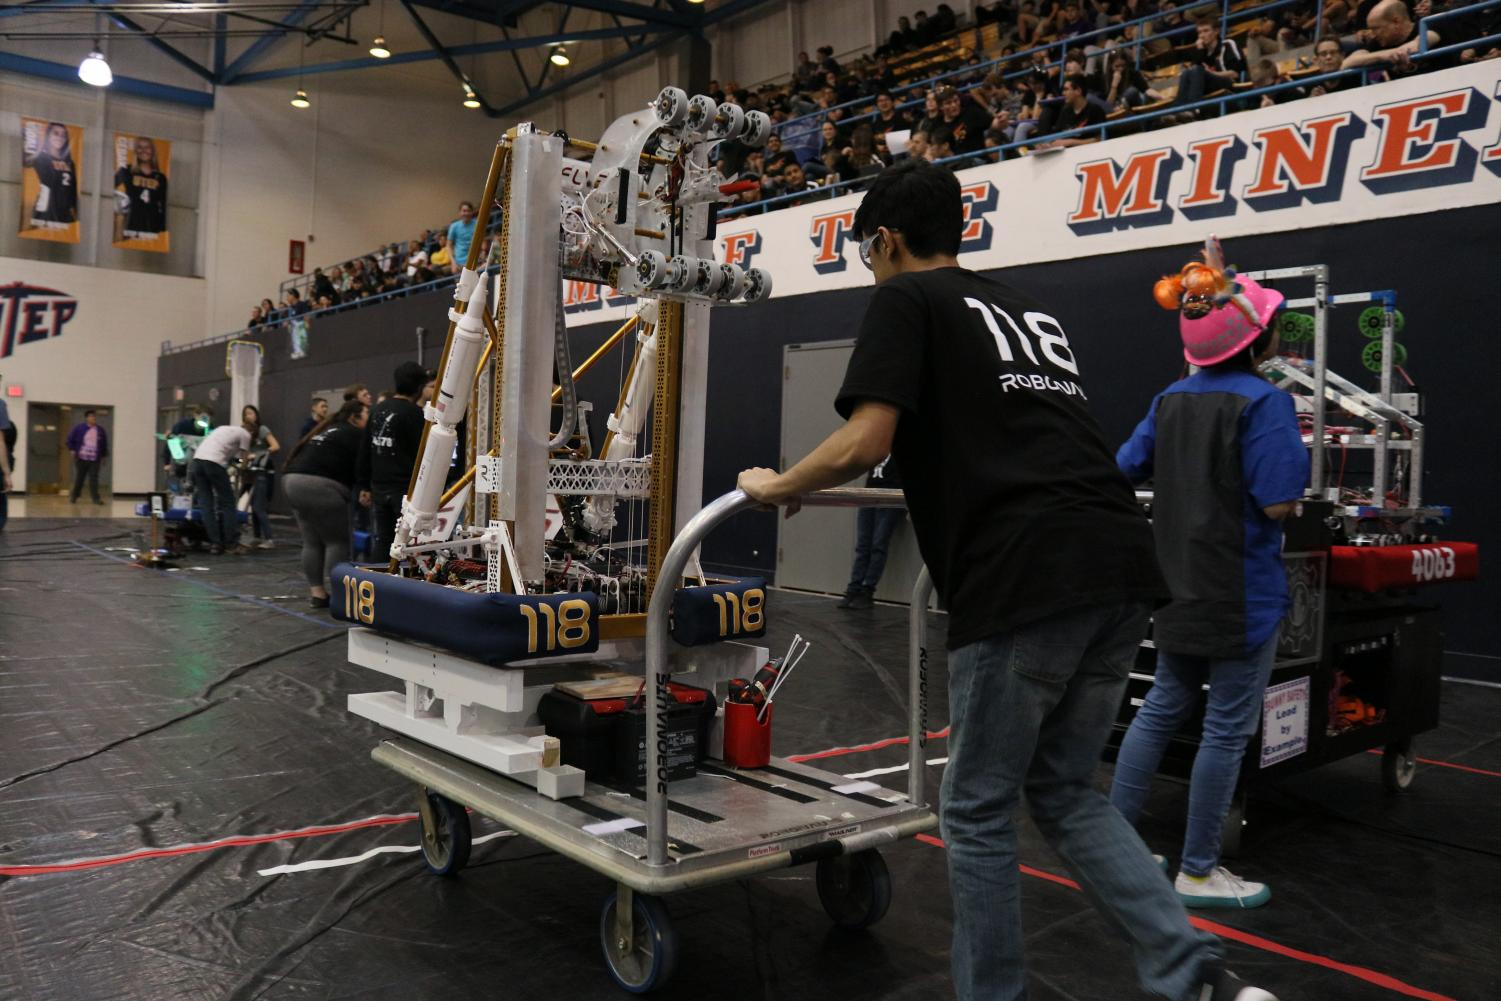 High+school+students+from+different+districts+of+the+state+participates+in+the+FIRST+robotic+competition+in+Memorial+Gym+at+the+University+of+Texas+at+El+Paso%2C+Saturday%2C+March+2%2C+2019.+